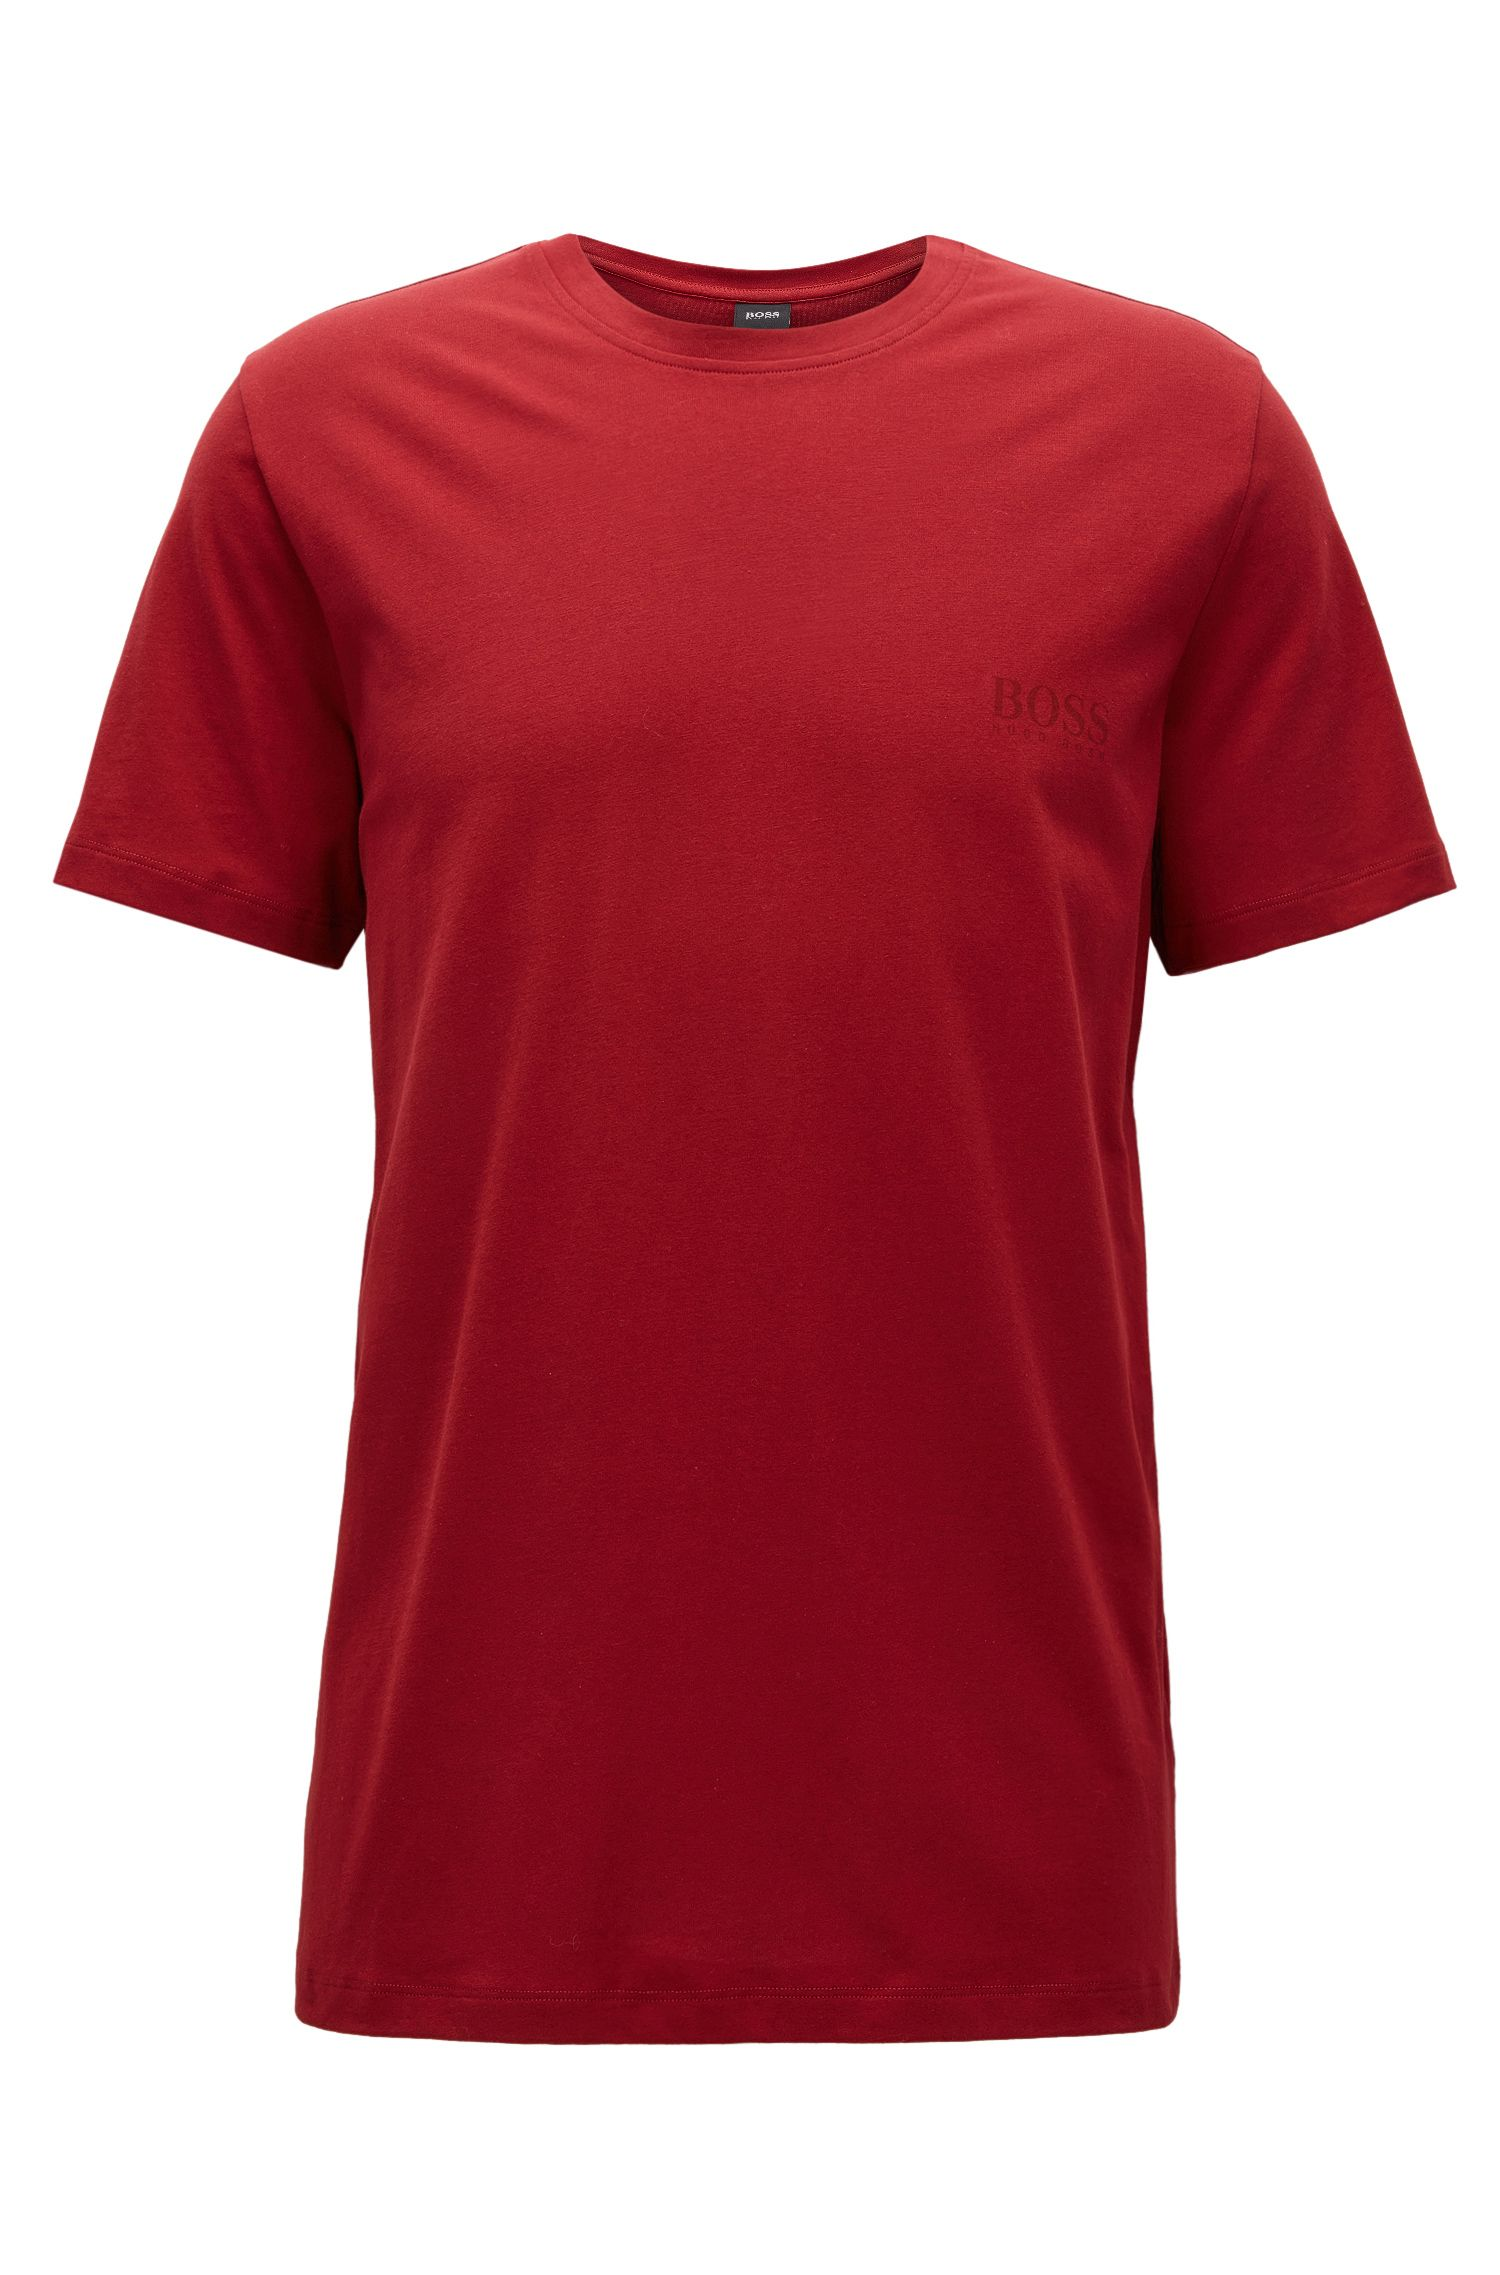 Camiseta relaxed fit en algodón suave